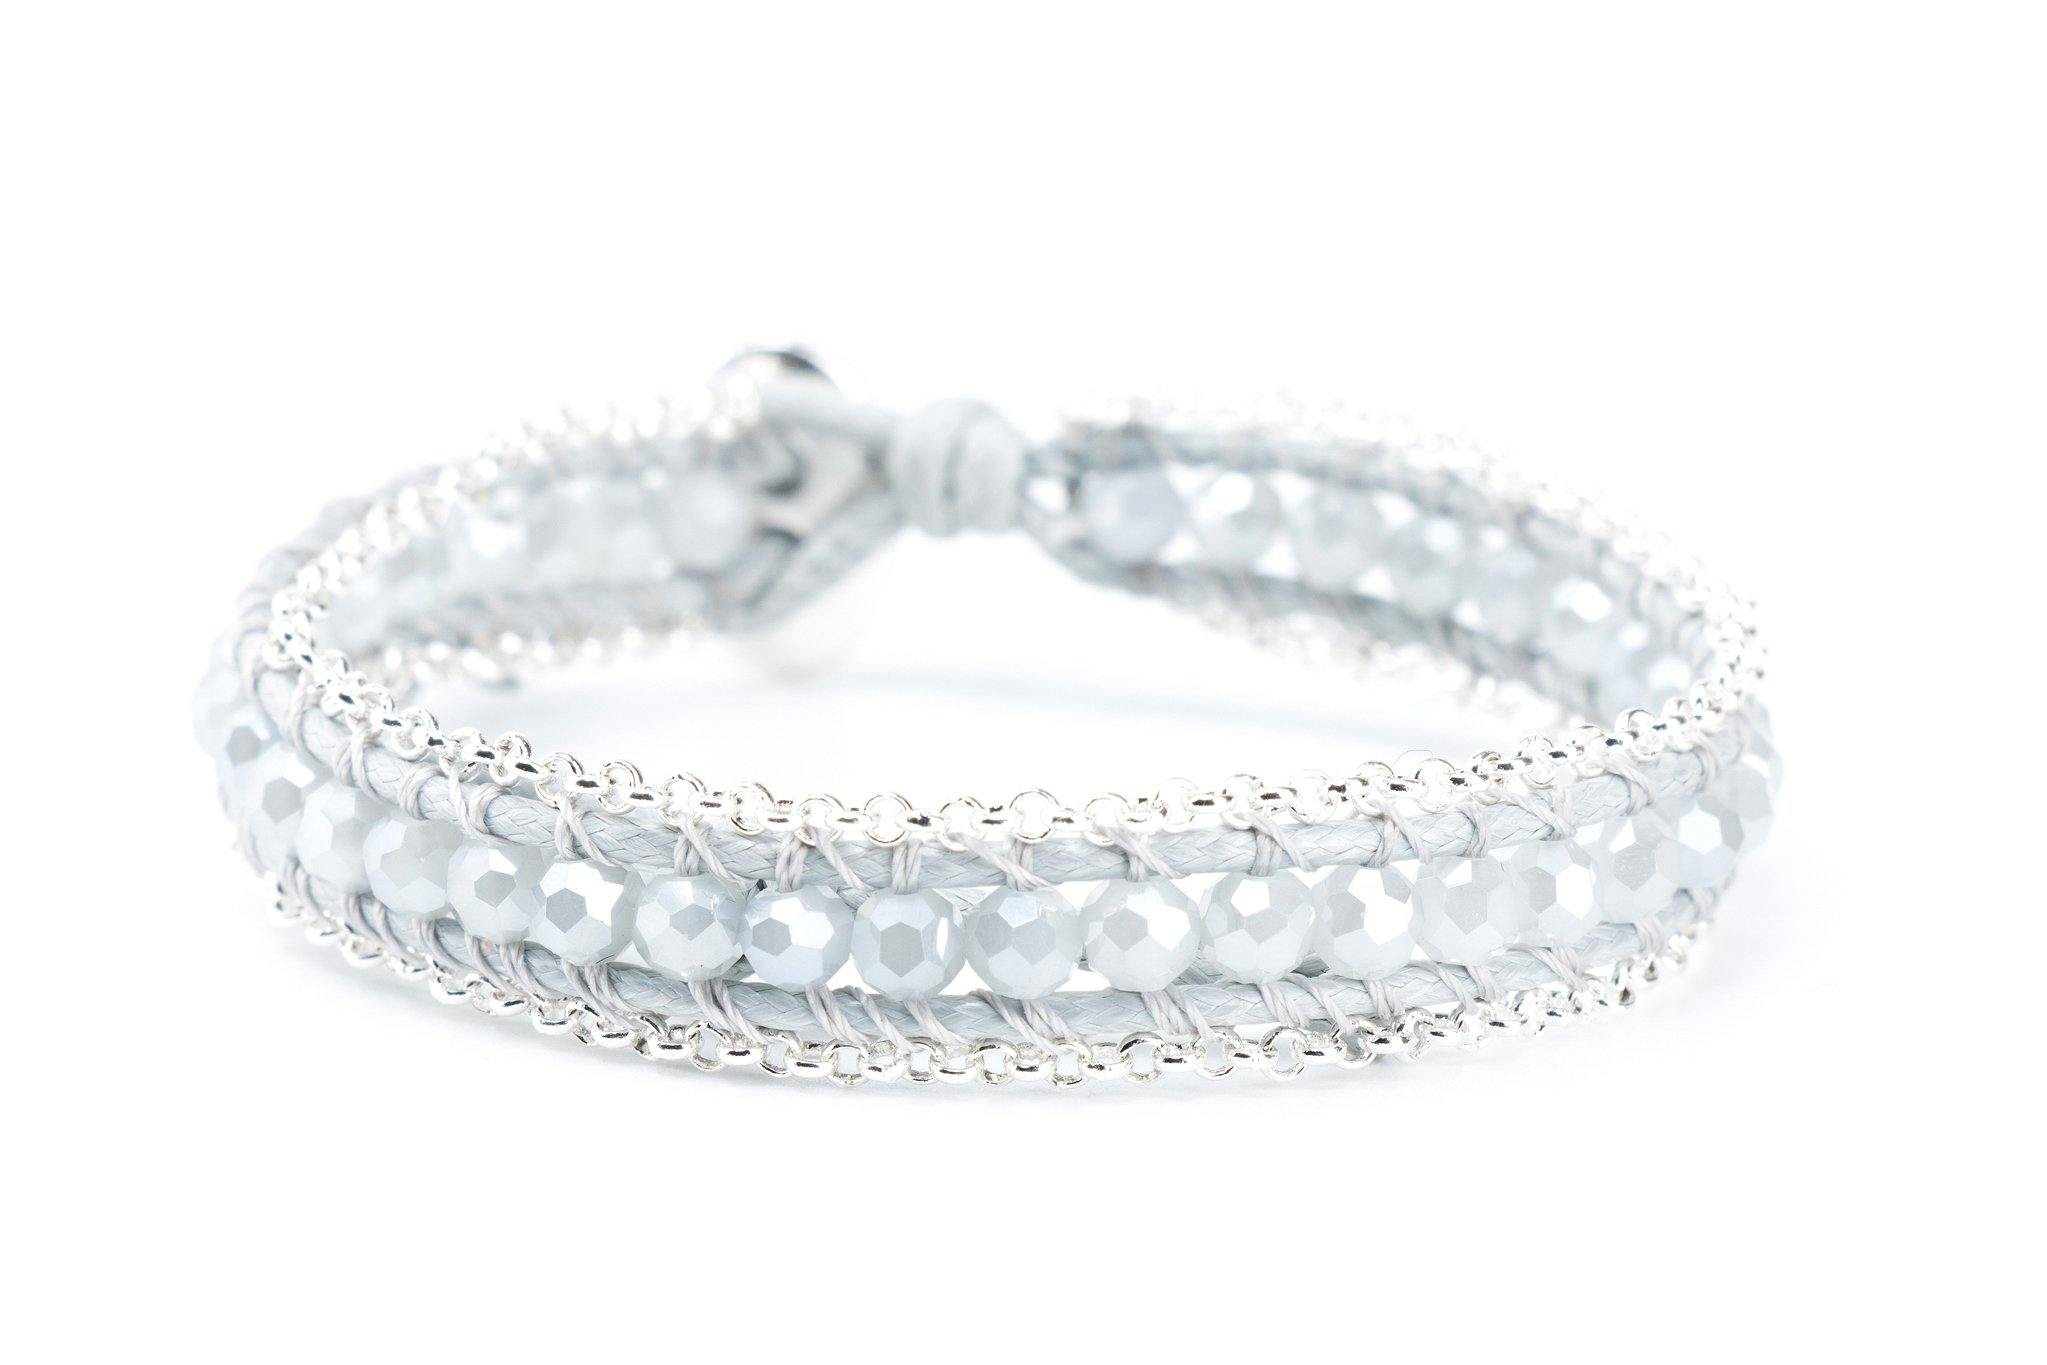 Single Wrap Gemstone Bracelet Lined with Chain - Silver | Silver